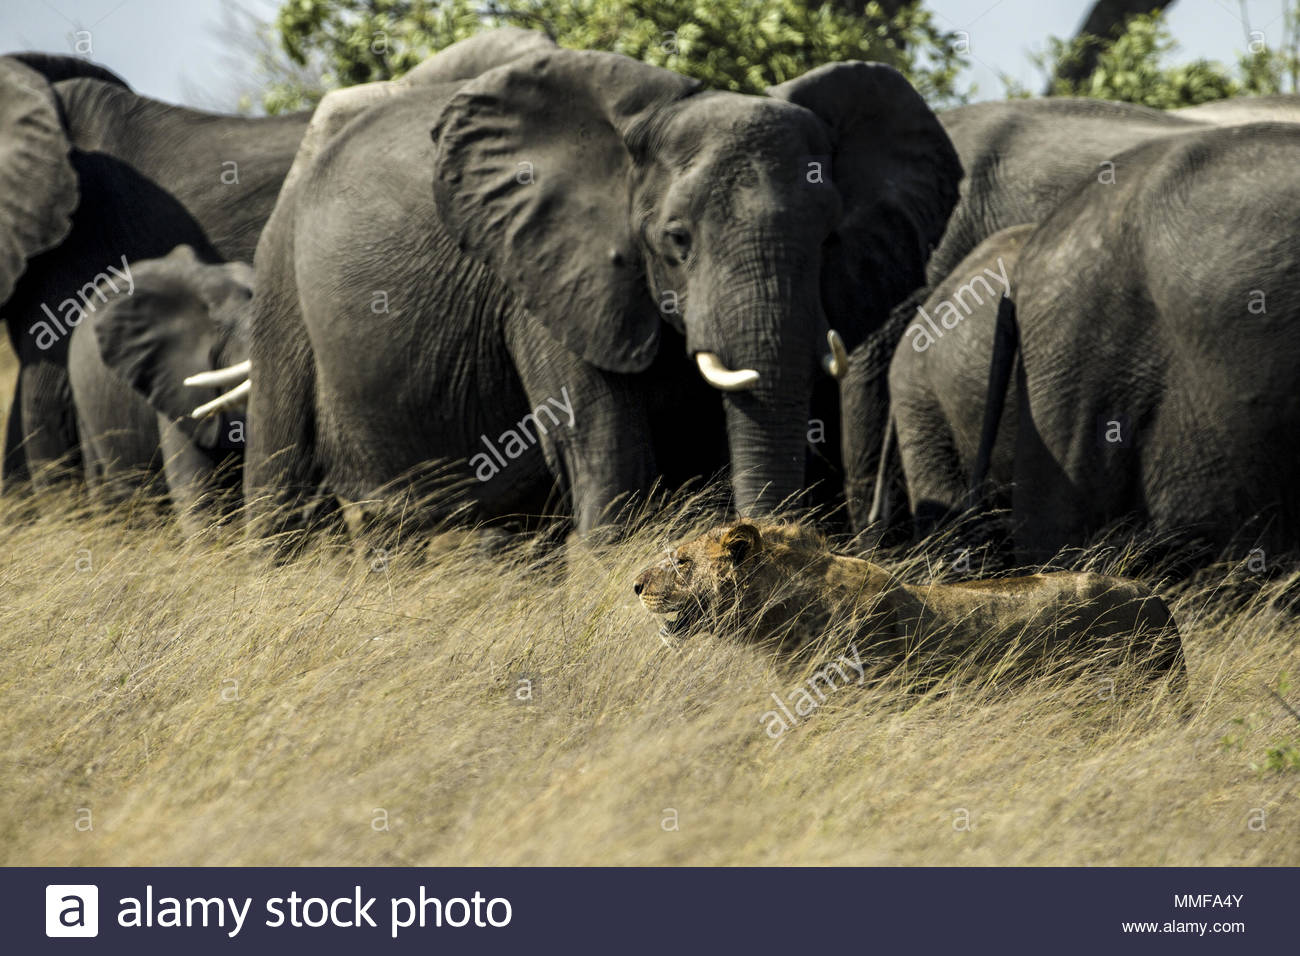 A herd of Elephant, Loxodonta africana, chase a pride of lions, Panthera leo, away from a carcass they were feeding on. - Stock Image